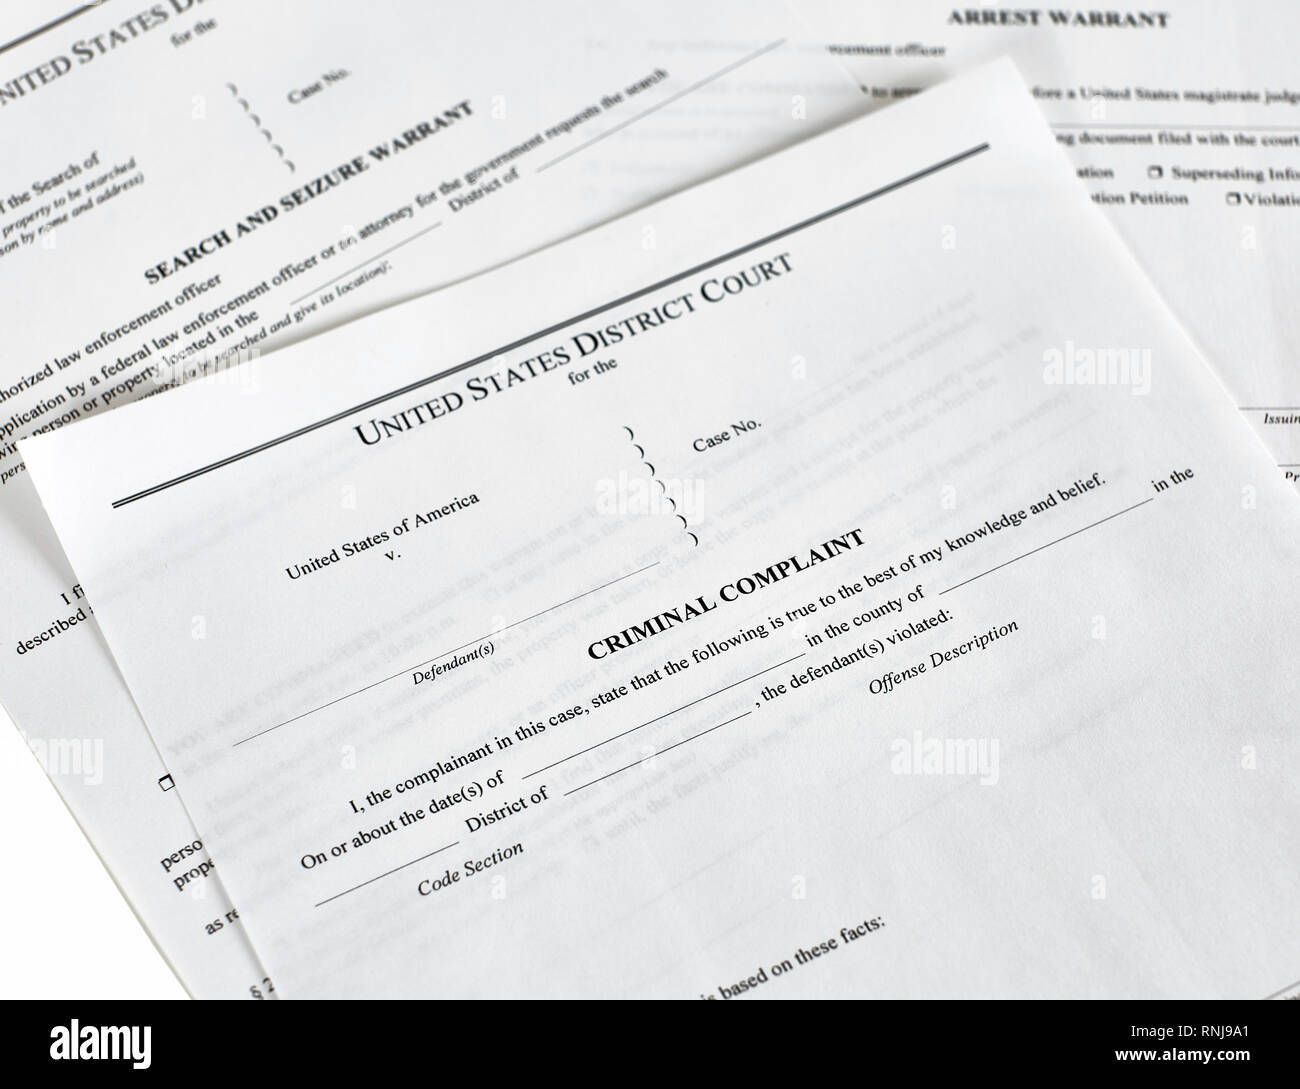 District Court criminal complaint, arrest warrant and search and seizure warrant doccuments isolated on white - Stock Image